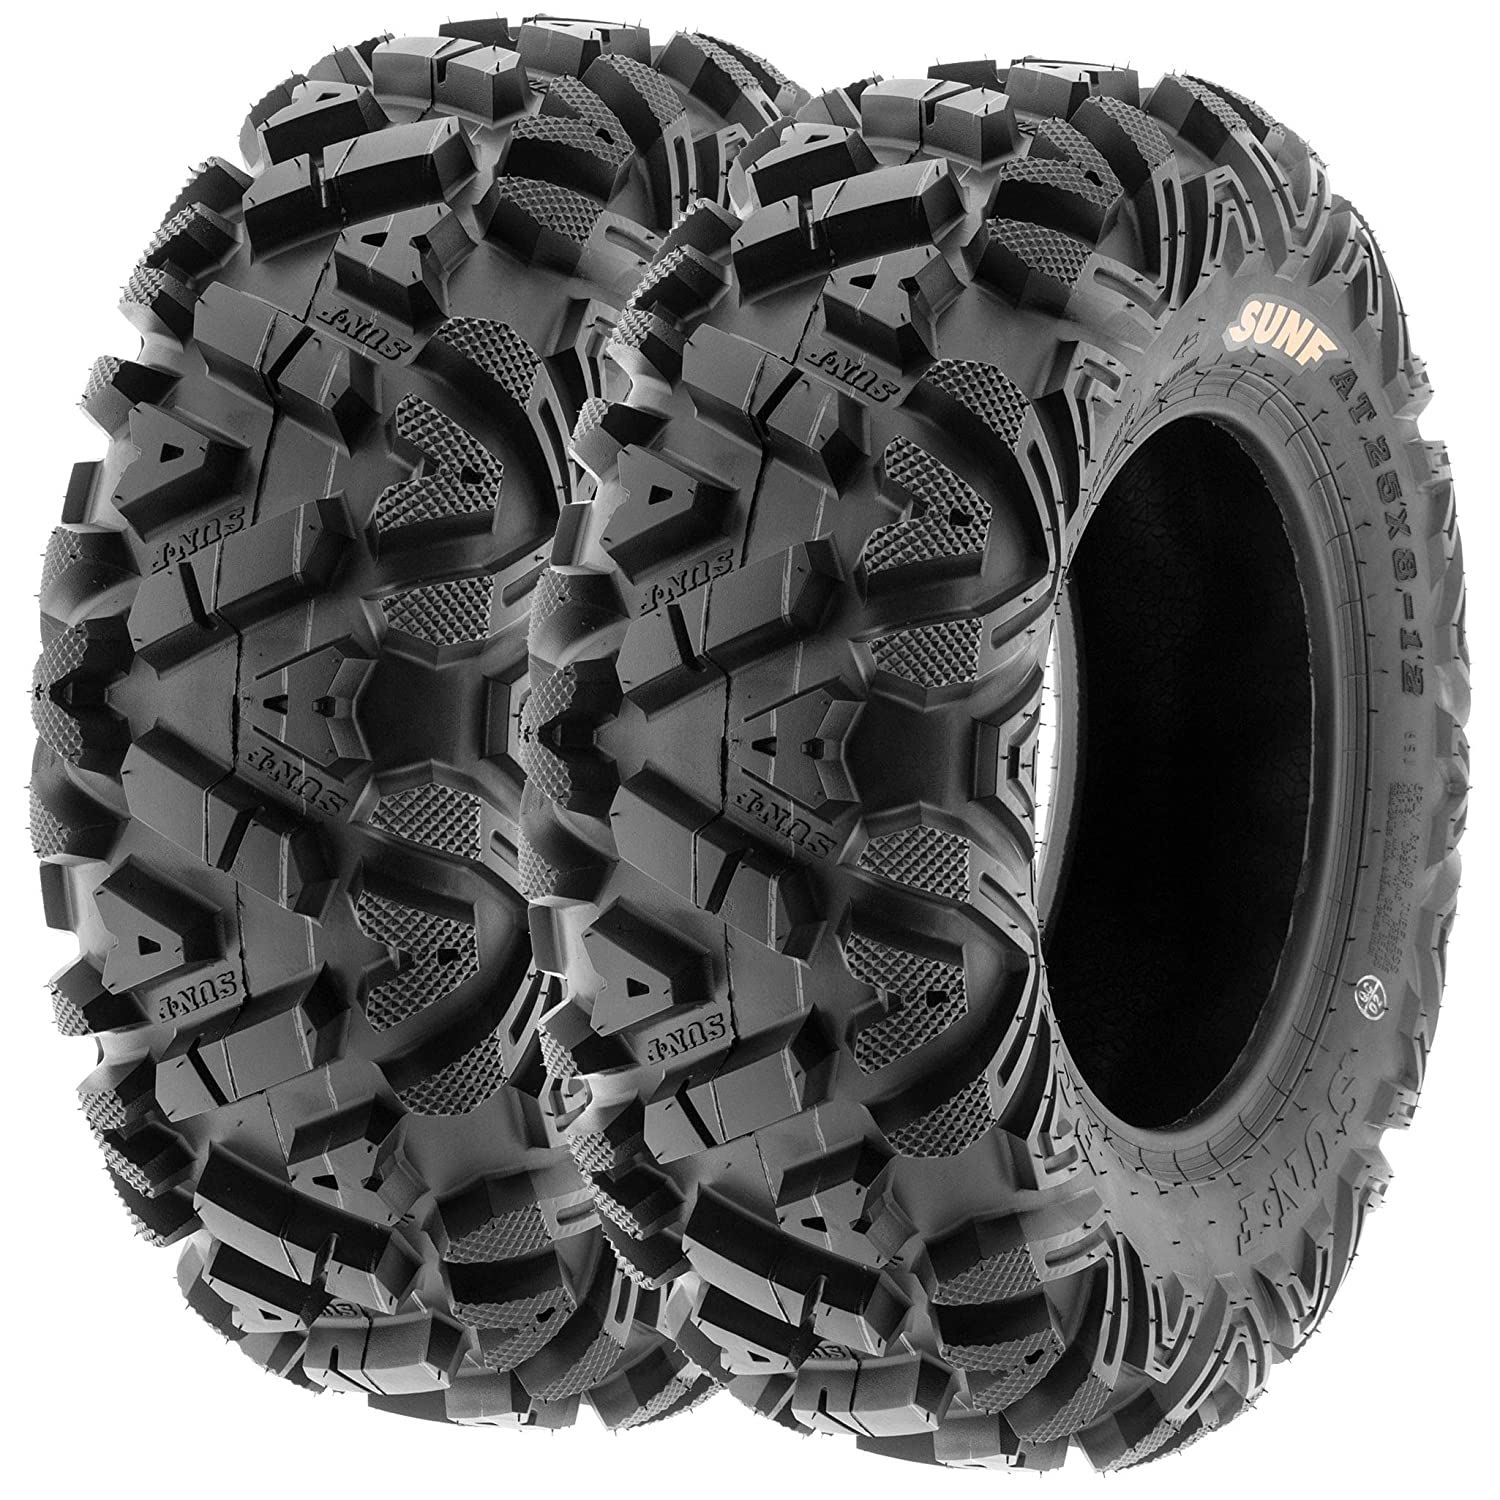 SunF ATV/UTV Off-Road Tires